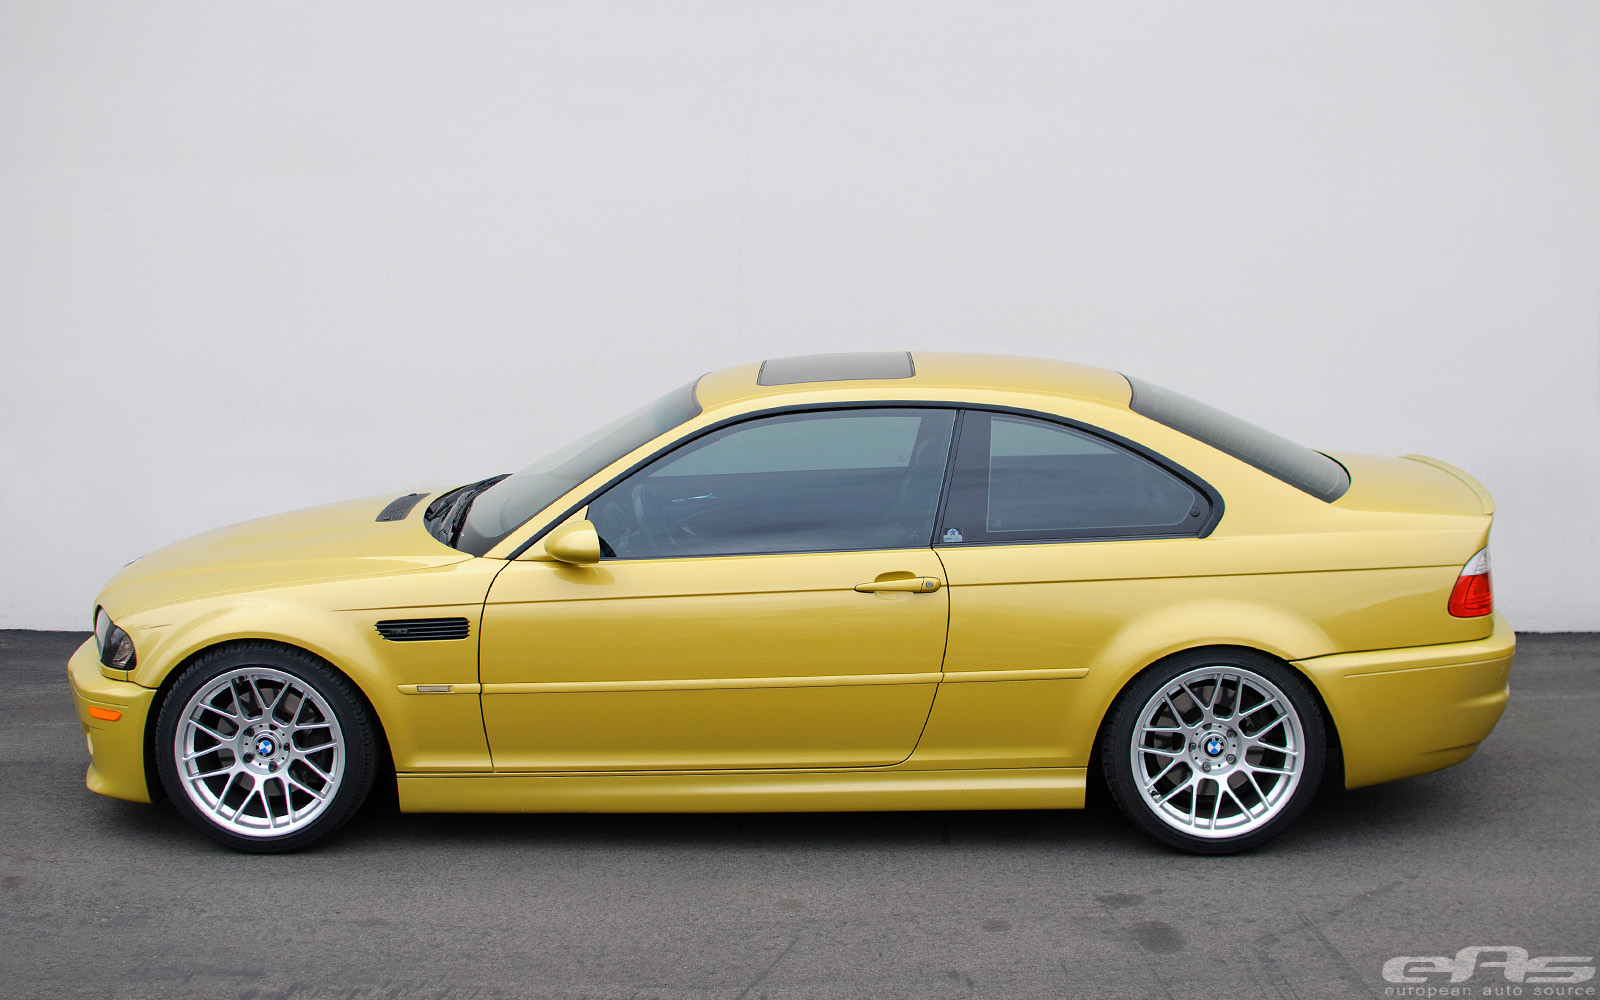 Phoenix Yellow E46 M3 On Apex Arc 8 Wheels Bmw Performance Parts Amp Services